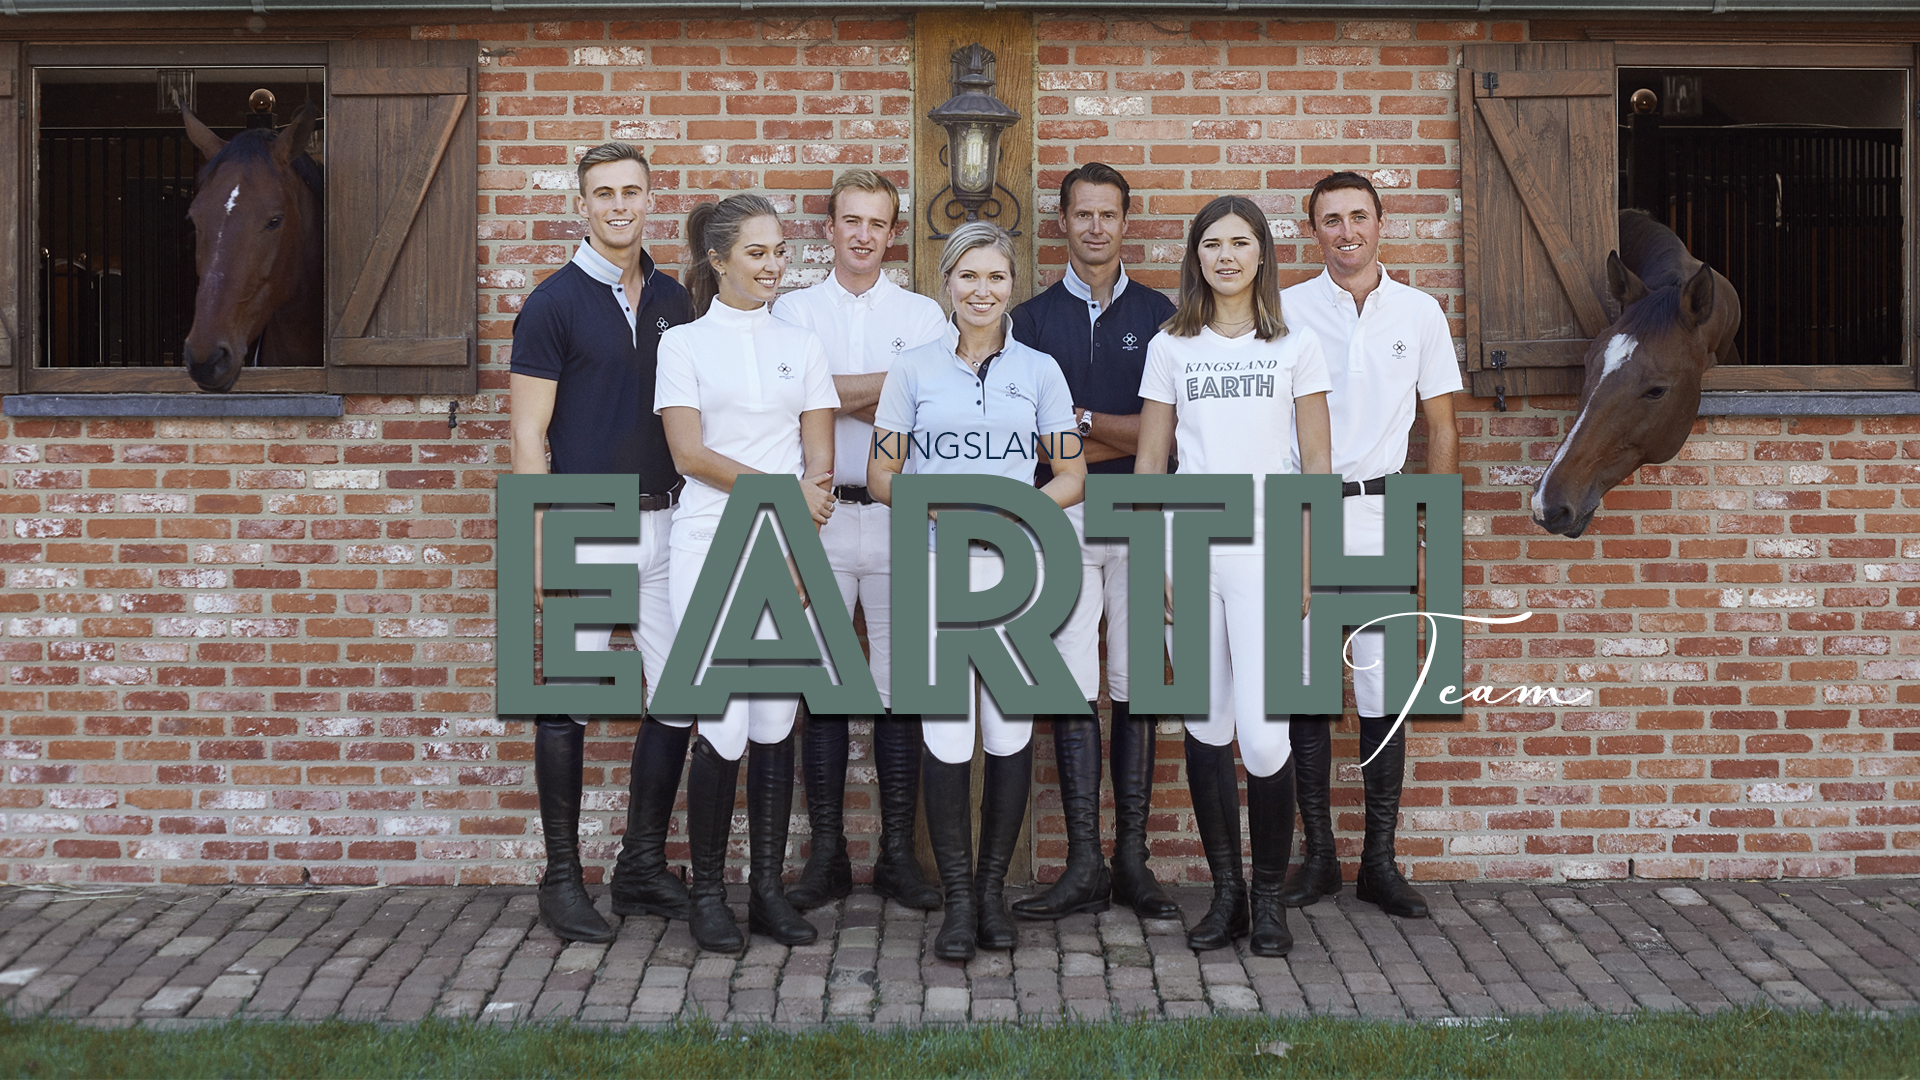 KINGSLAND EARTH – BECAUSE WE CARE